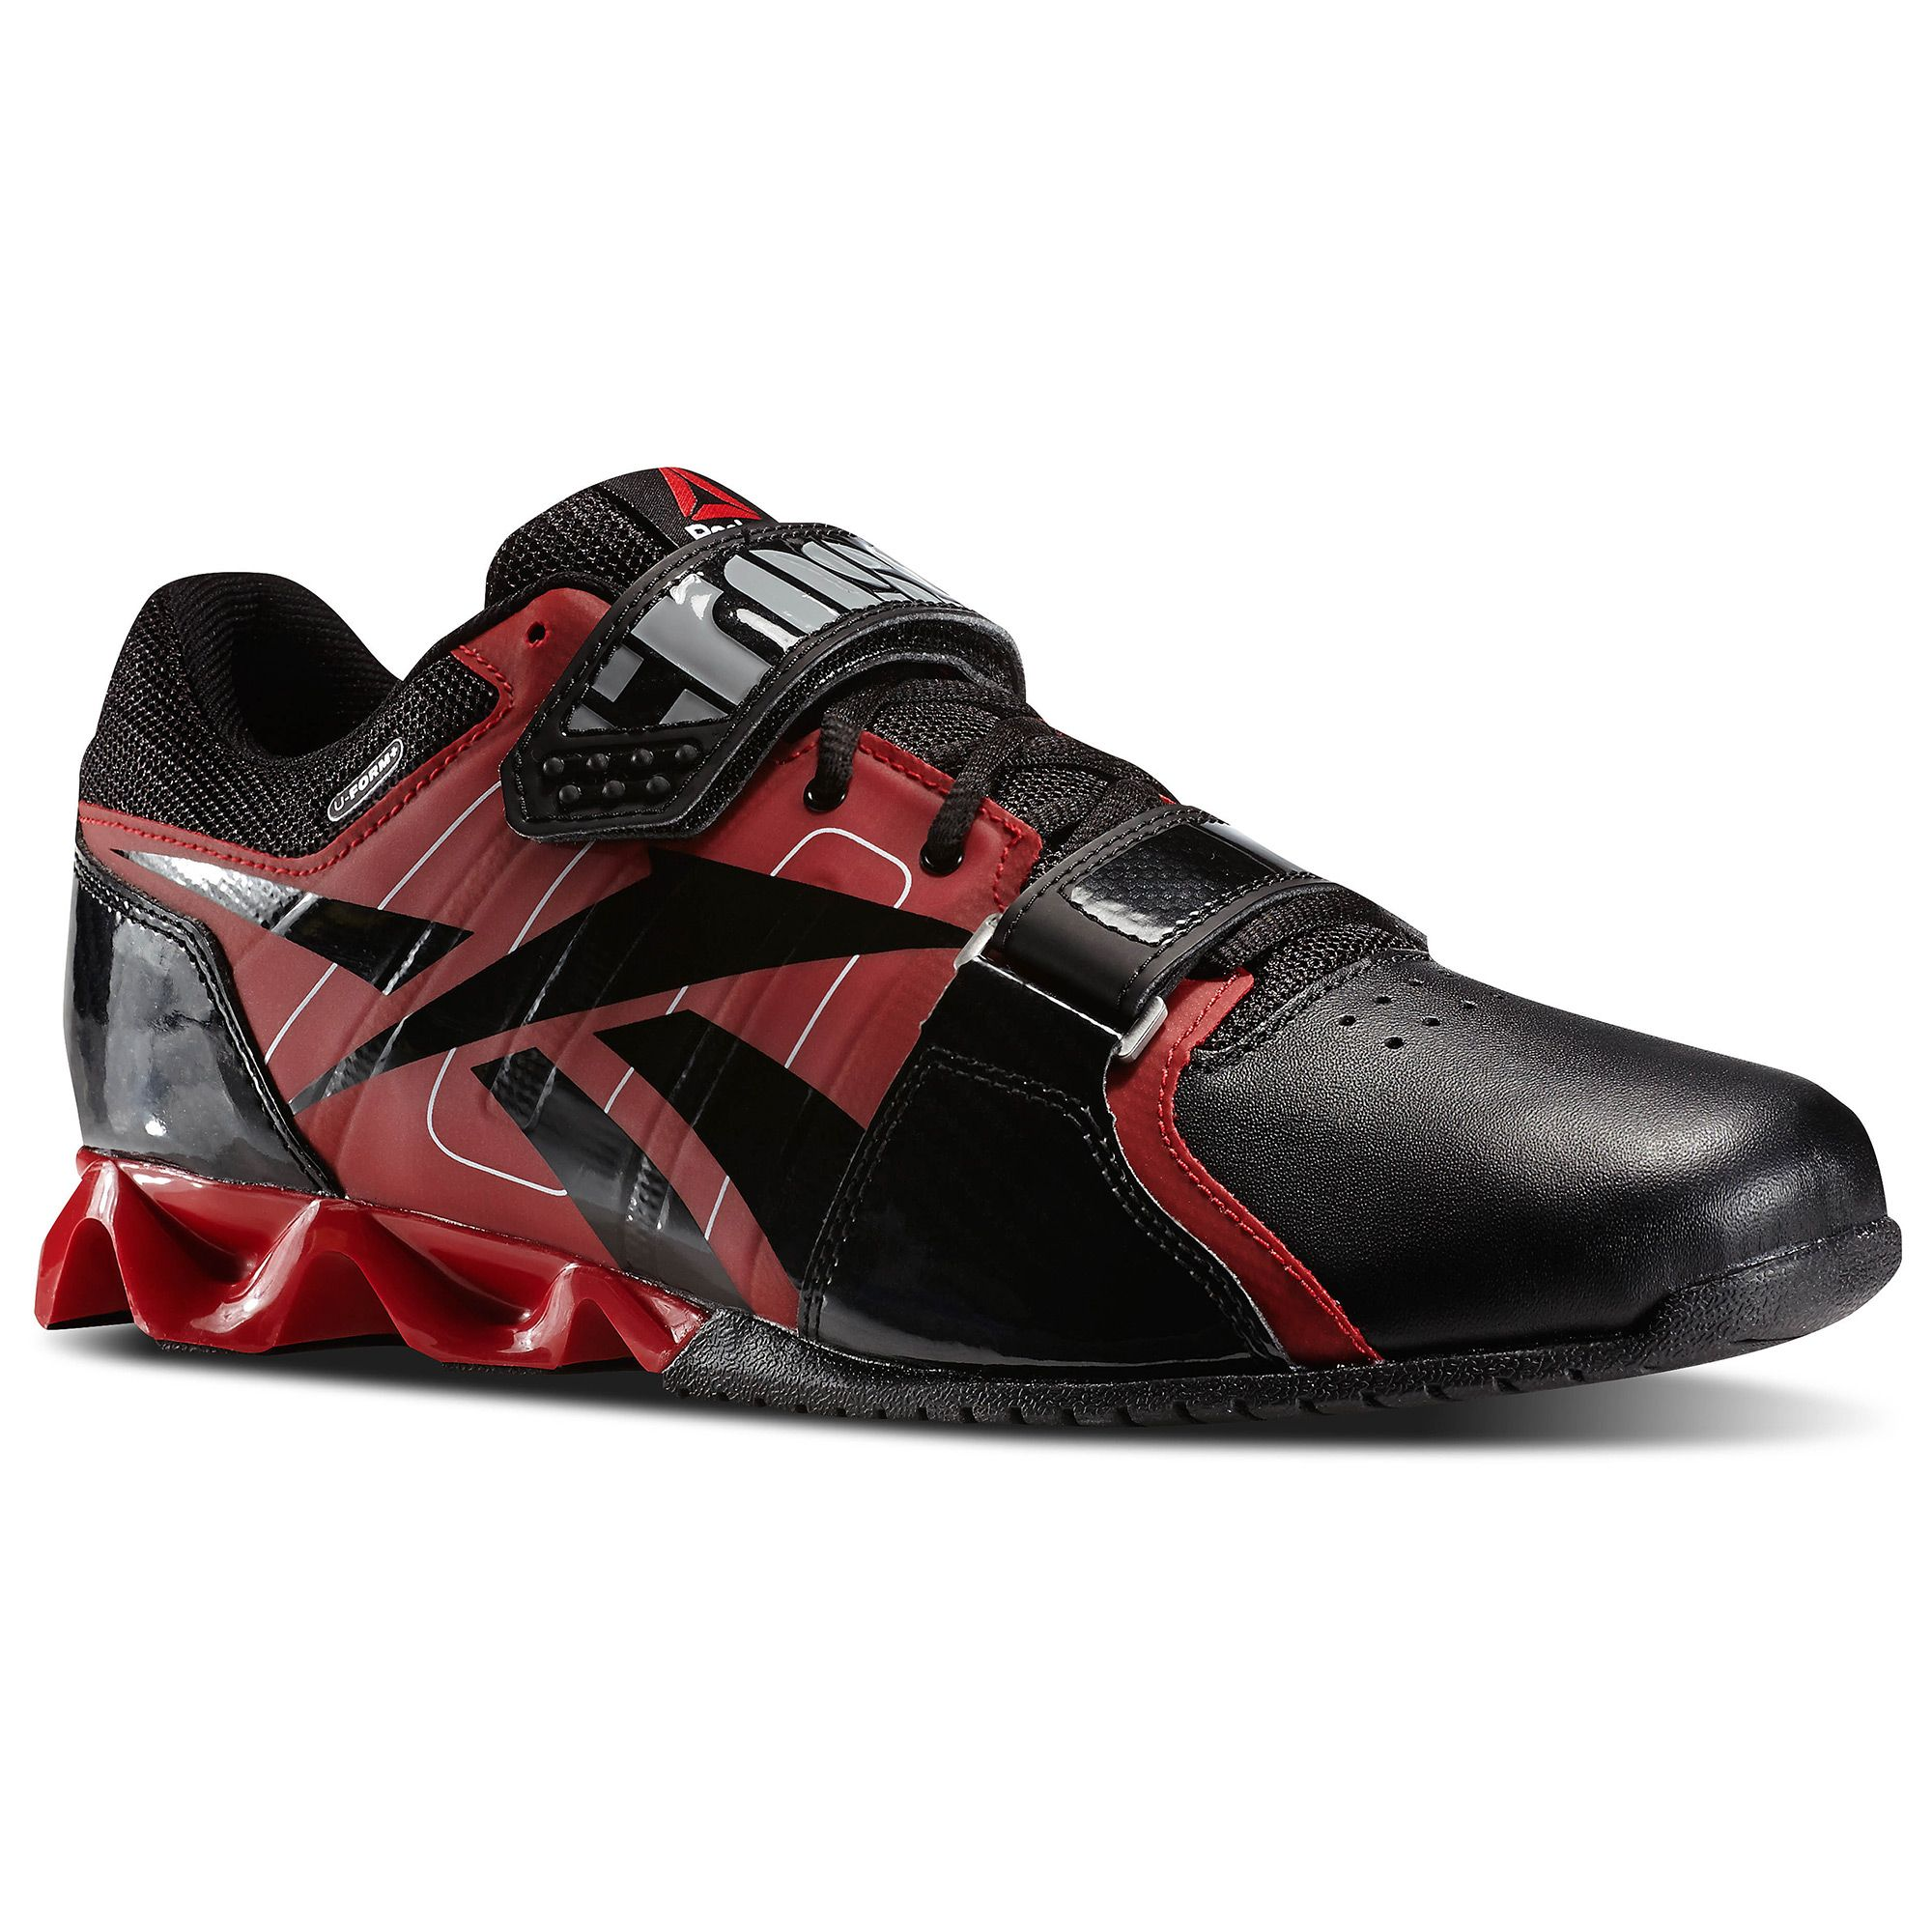 Reebok-Sports-shoes-and-running-shoes-for-men (23)